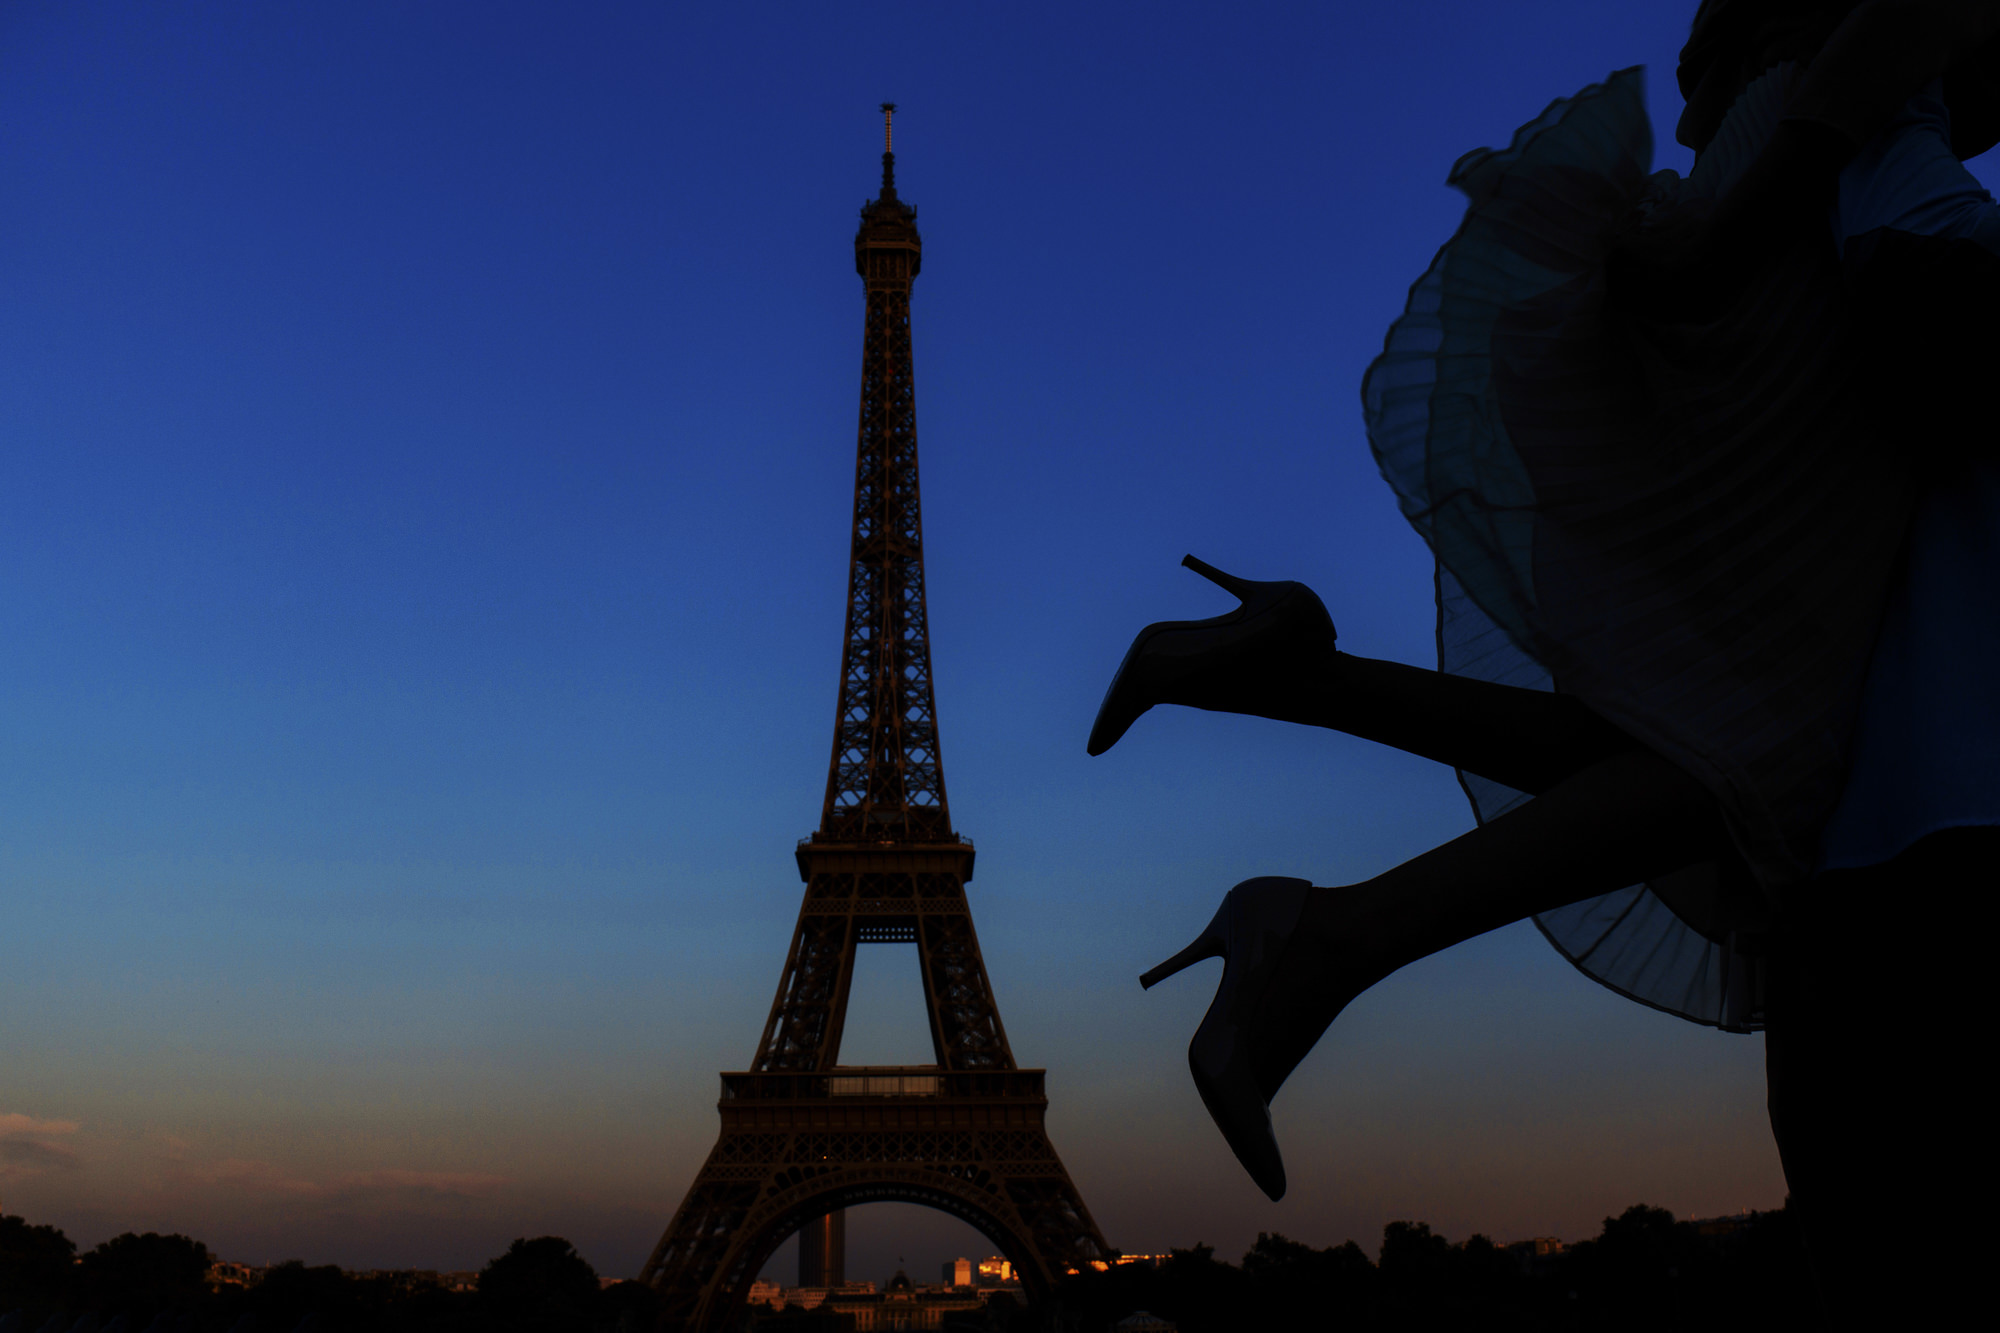 Silhouette of bride kicking up stiletto heels at eiffel tower in paris - photo by Look Fotographica